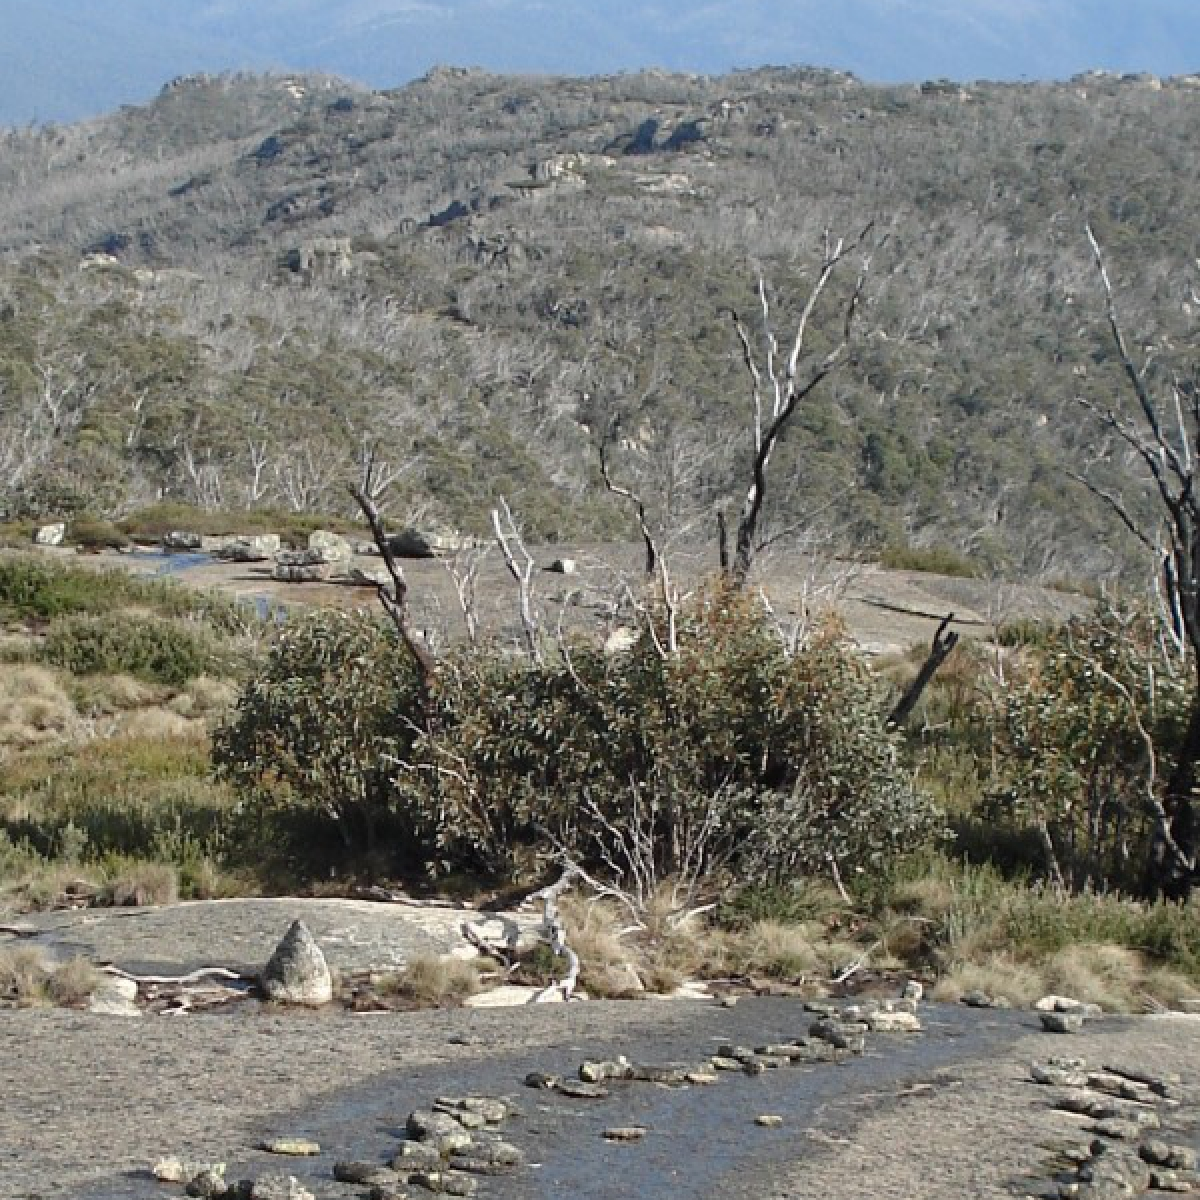 BC Stone arrangements in Namadgi